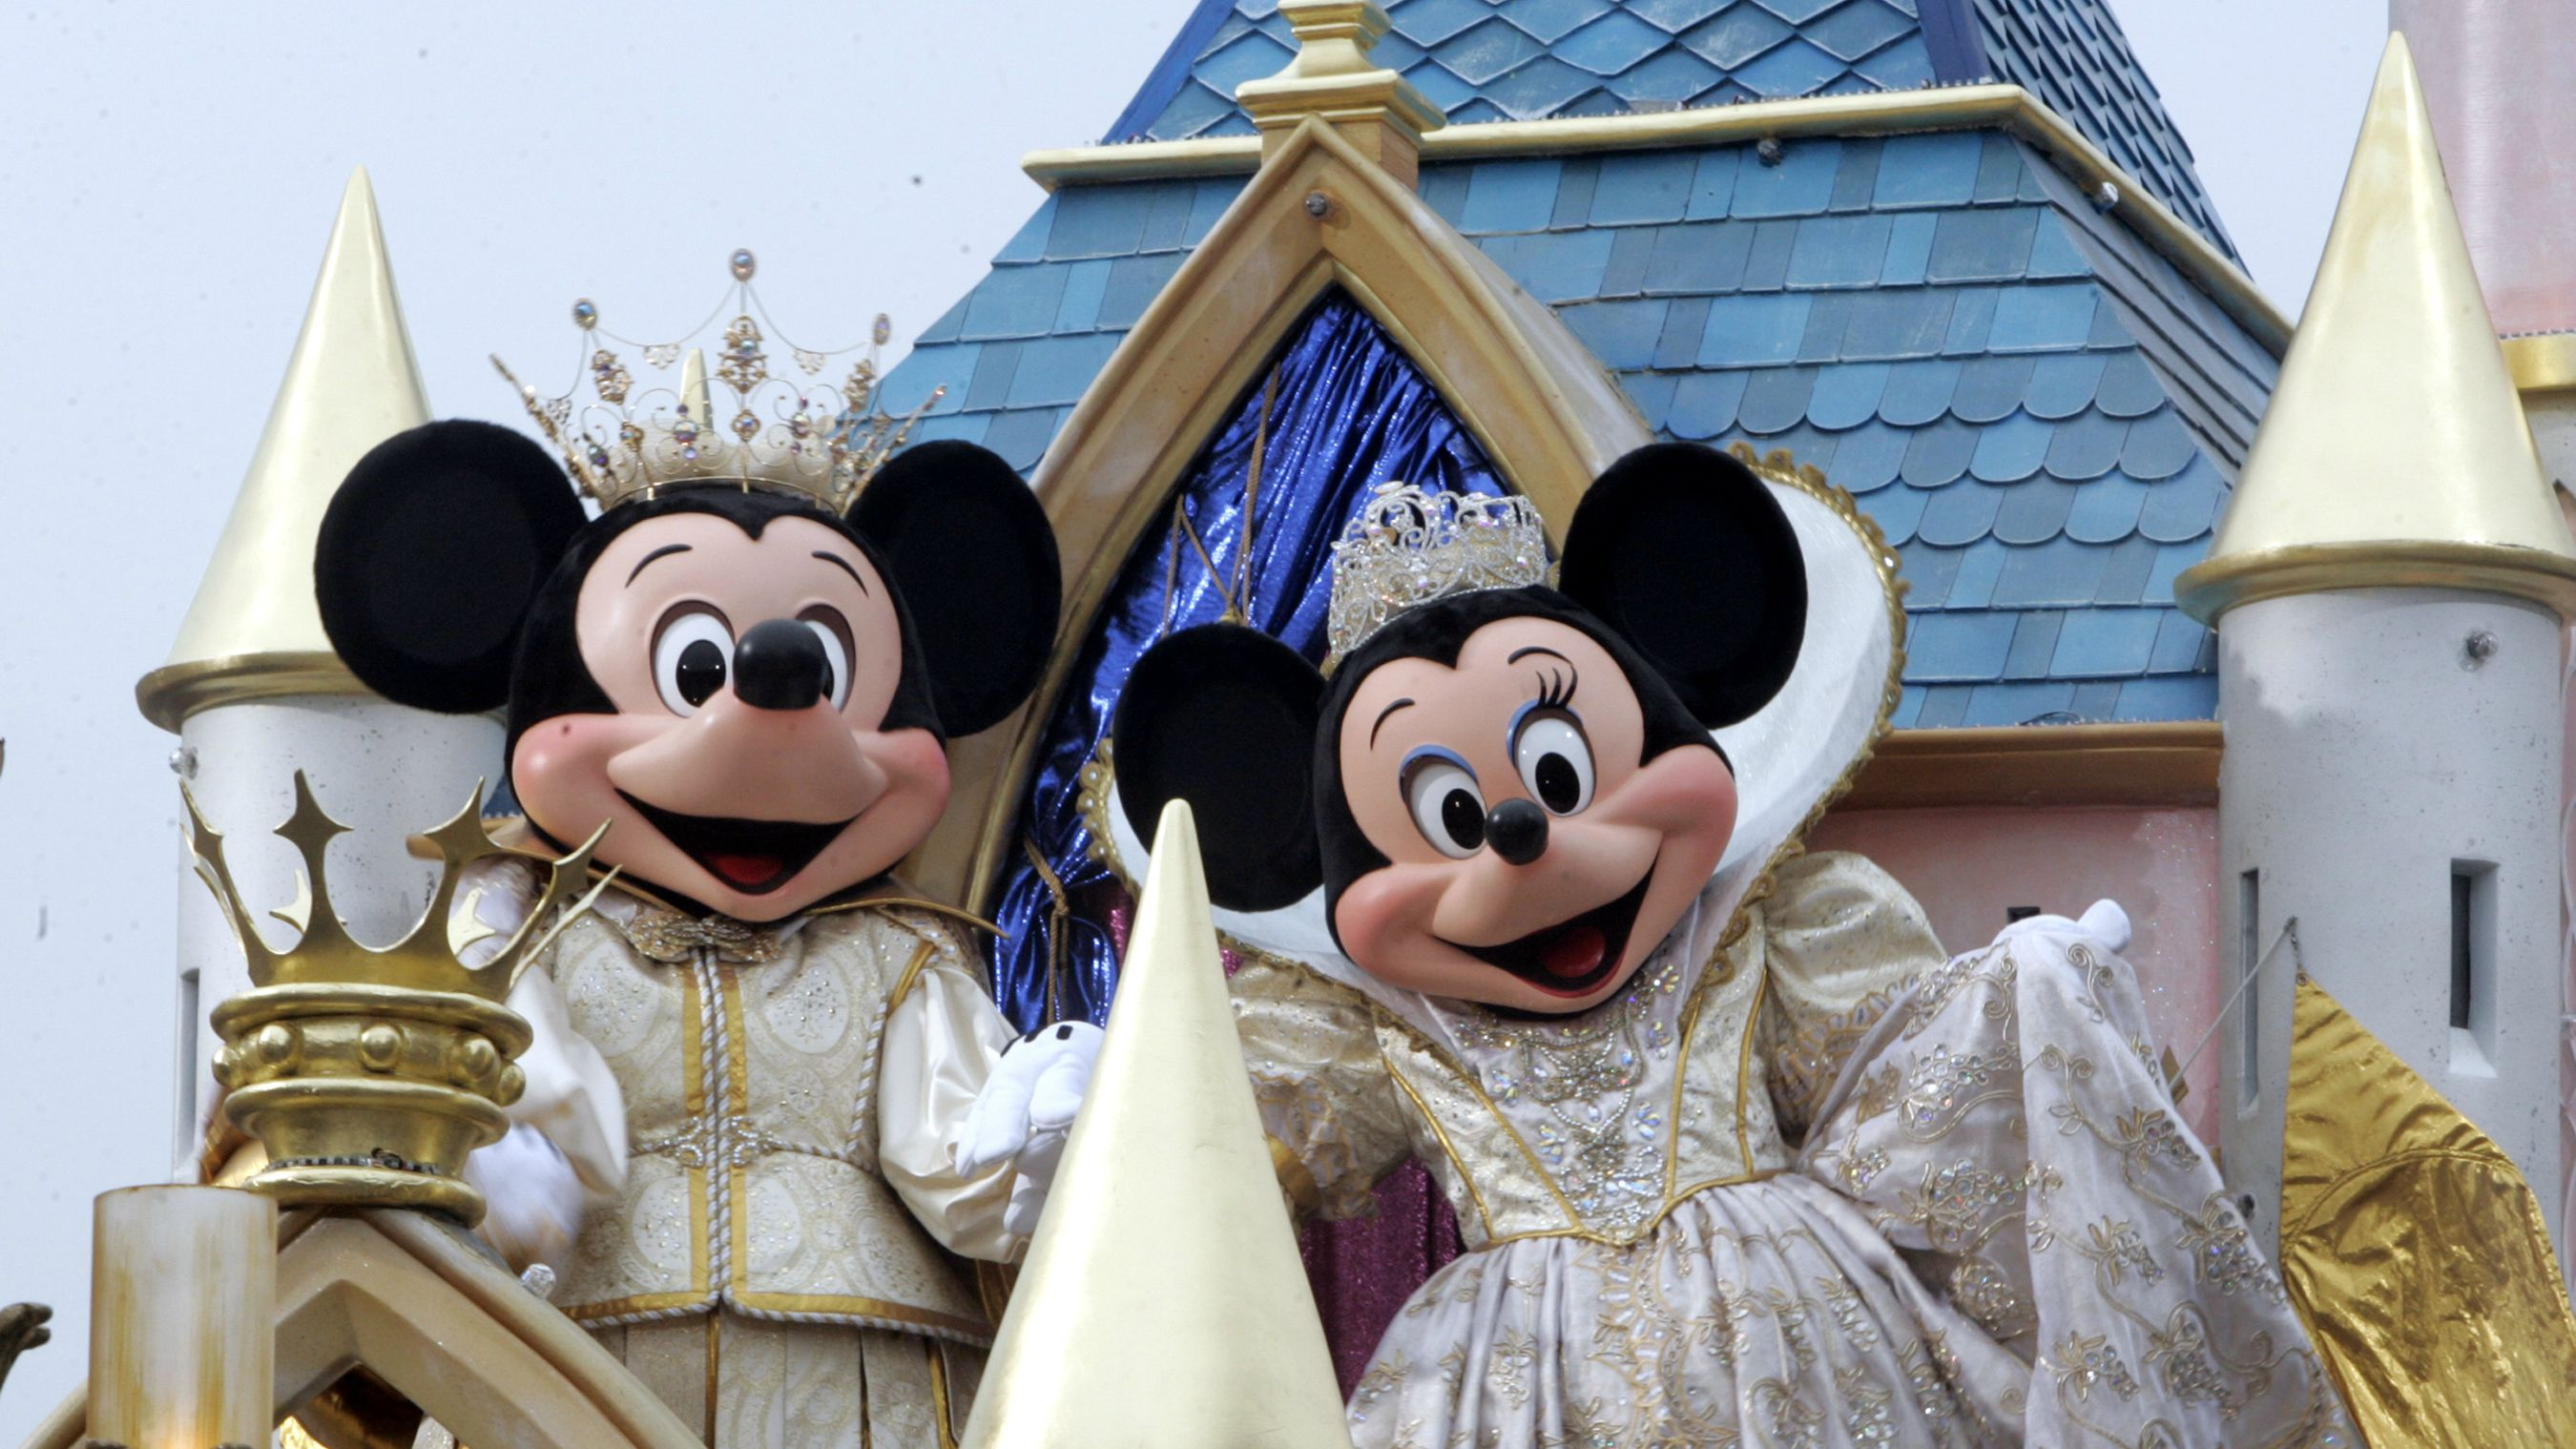 """DATE IMPORTED:May 04, 2005Mickey and Minnie Mouse in Disneyland parade """"Walt Disney's Parade of Dreams"""" along Main Street in Disneyland. Disney characters 'Mickey Mouse' (L) and 'Minnie Mouse' ride atop the final float during the premiere of the Disneyland parade """"Walt Disney's Parade of Dreams"""" featuring the most Disney characters ever assembled along Main Street at the Disneyland theme park as the celebration of Disneyland's 50th anniversary """"The Happiest Homecoming on Earth"""" begins in Anaheim, California May 4, 2005. Walt Disney, founder of the Walt Disney Company and visionary behind the creation of Disneyland, opened the park on July 17, 1955. REUTERS/Fred Prouser"""